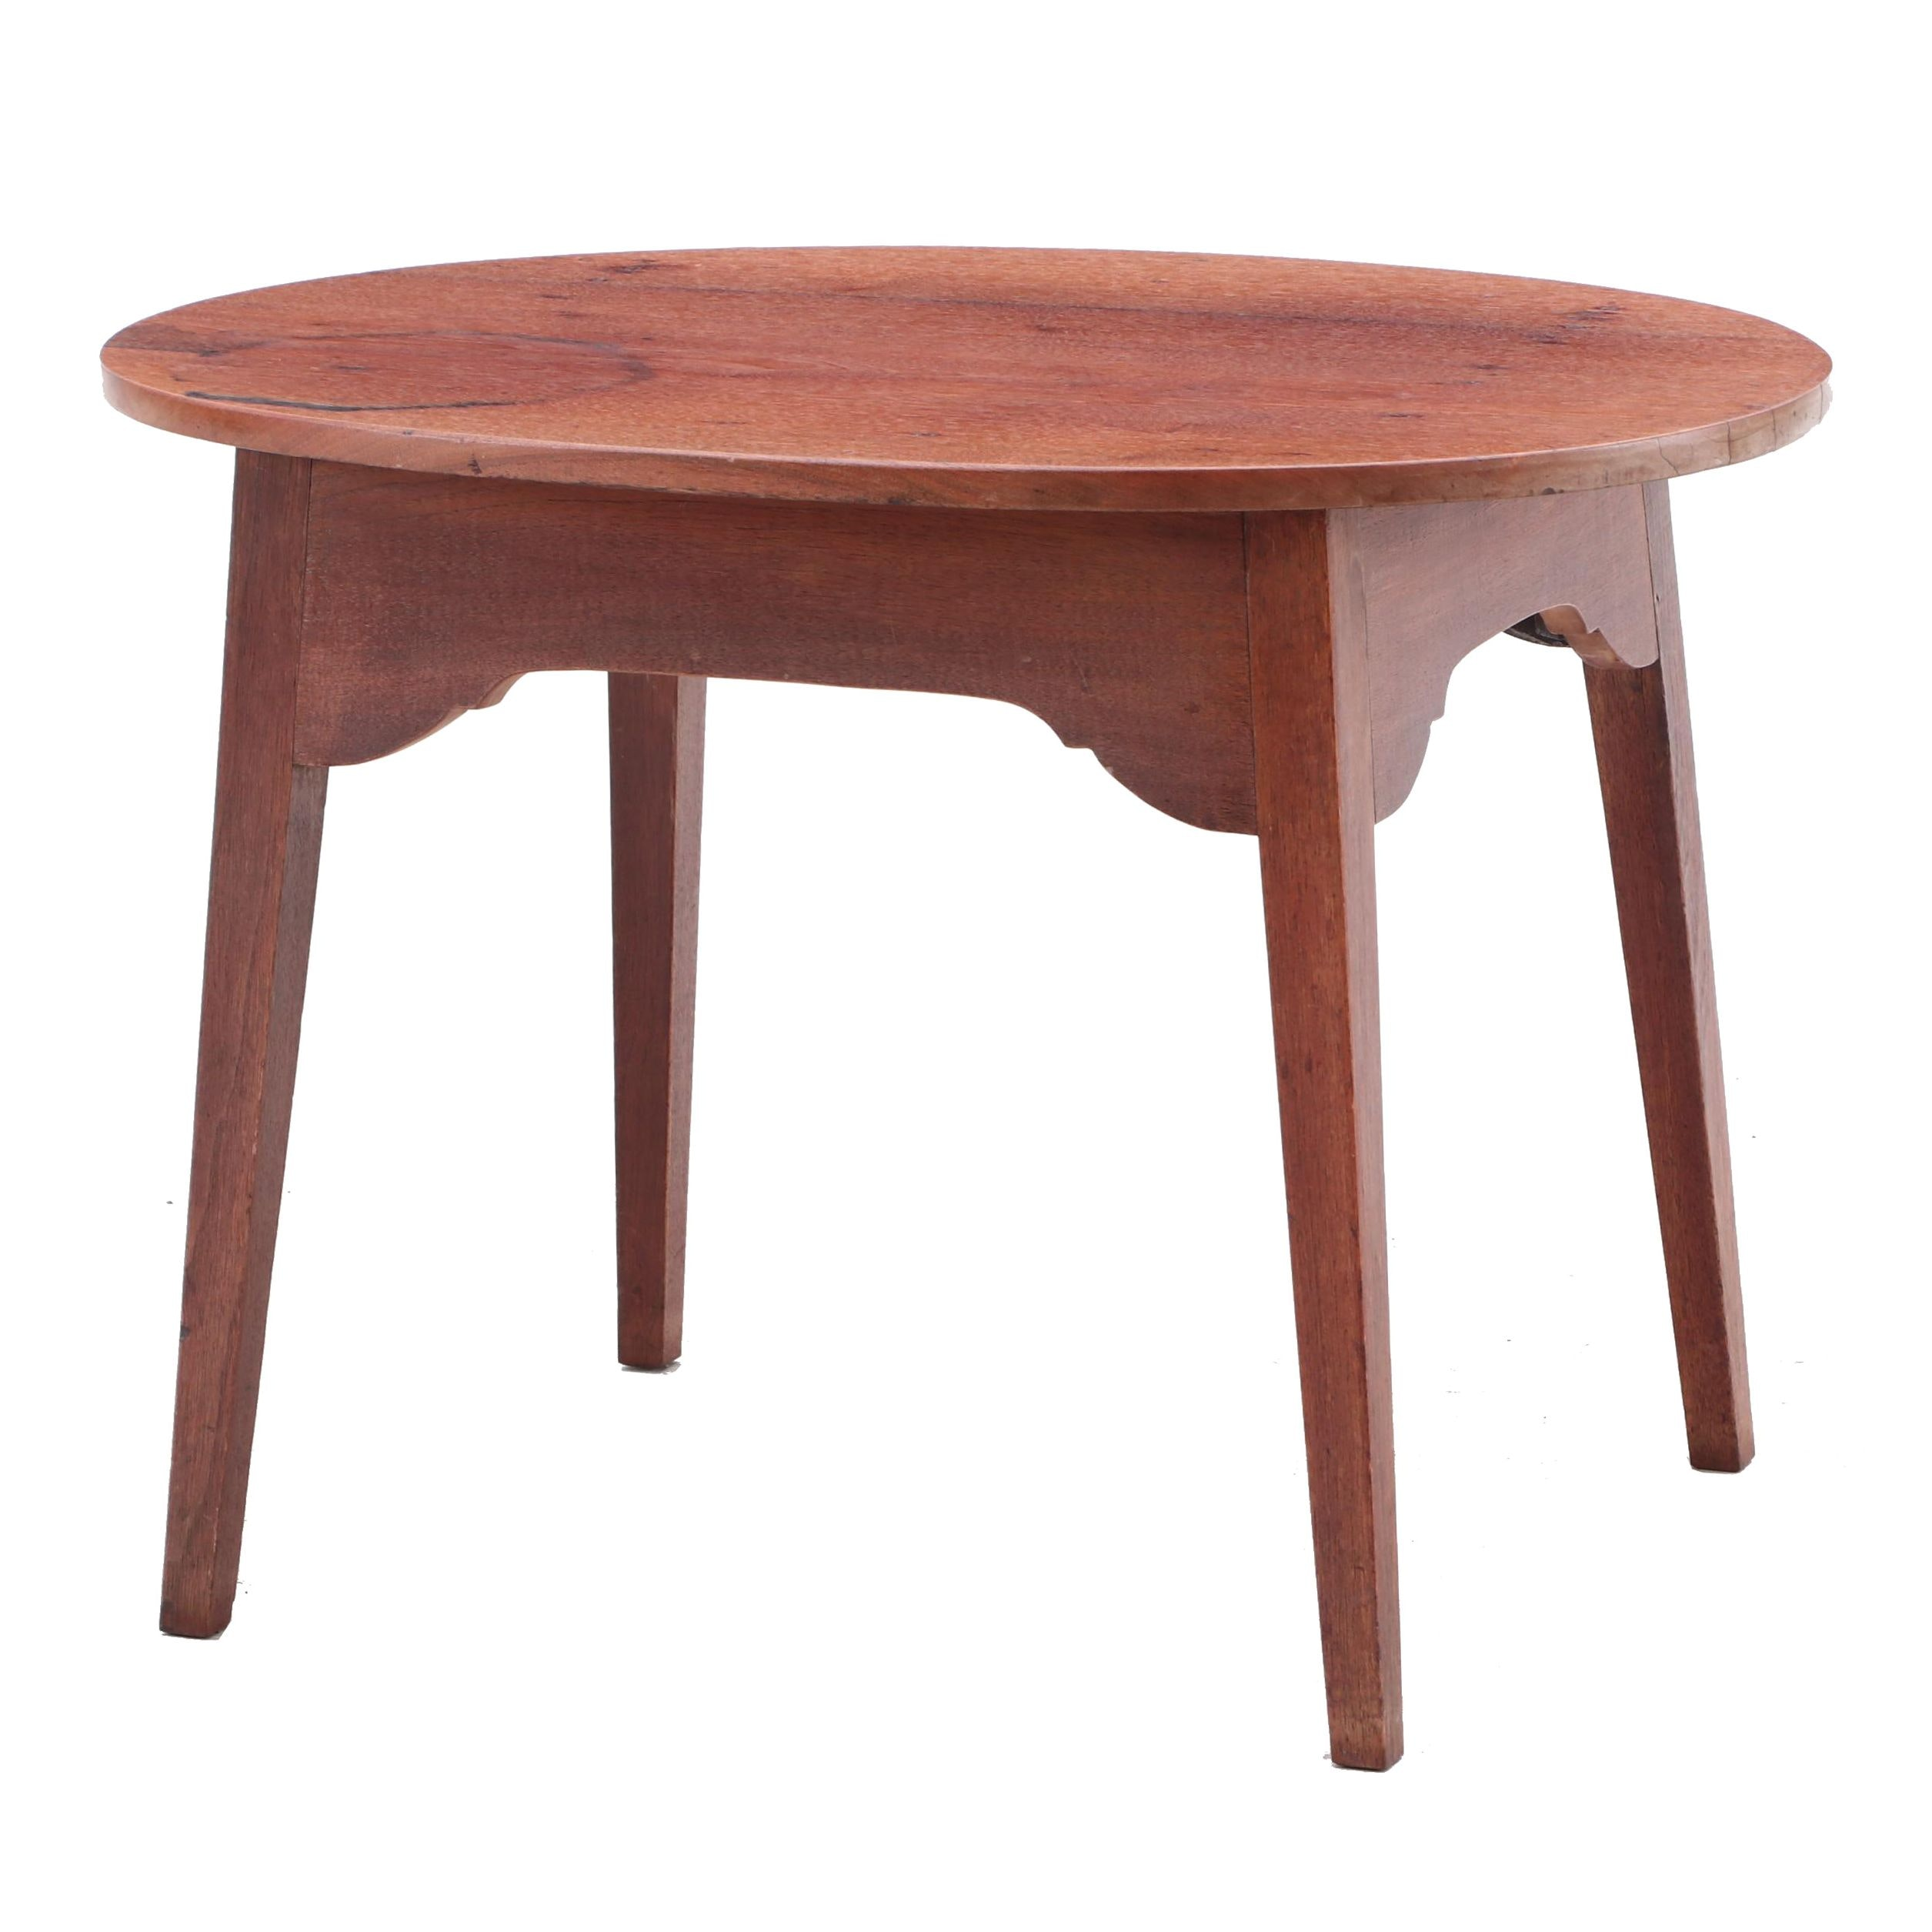 Colonial Stye Birch Accent Table in Mahogany Finish